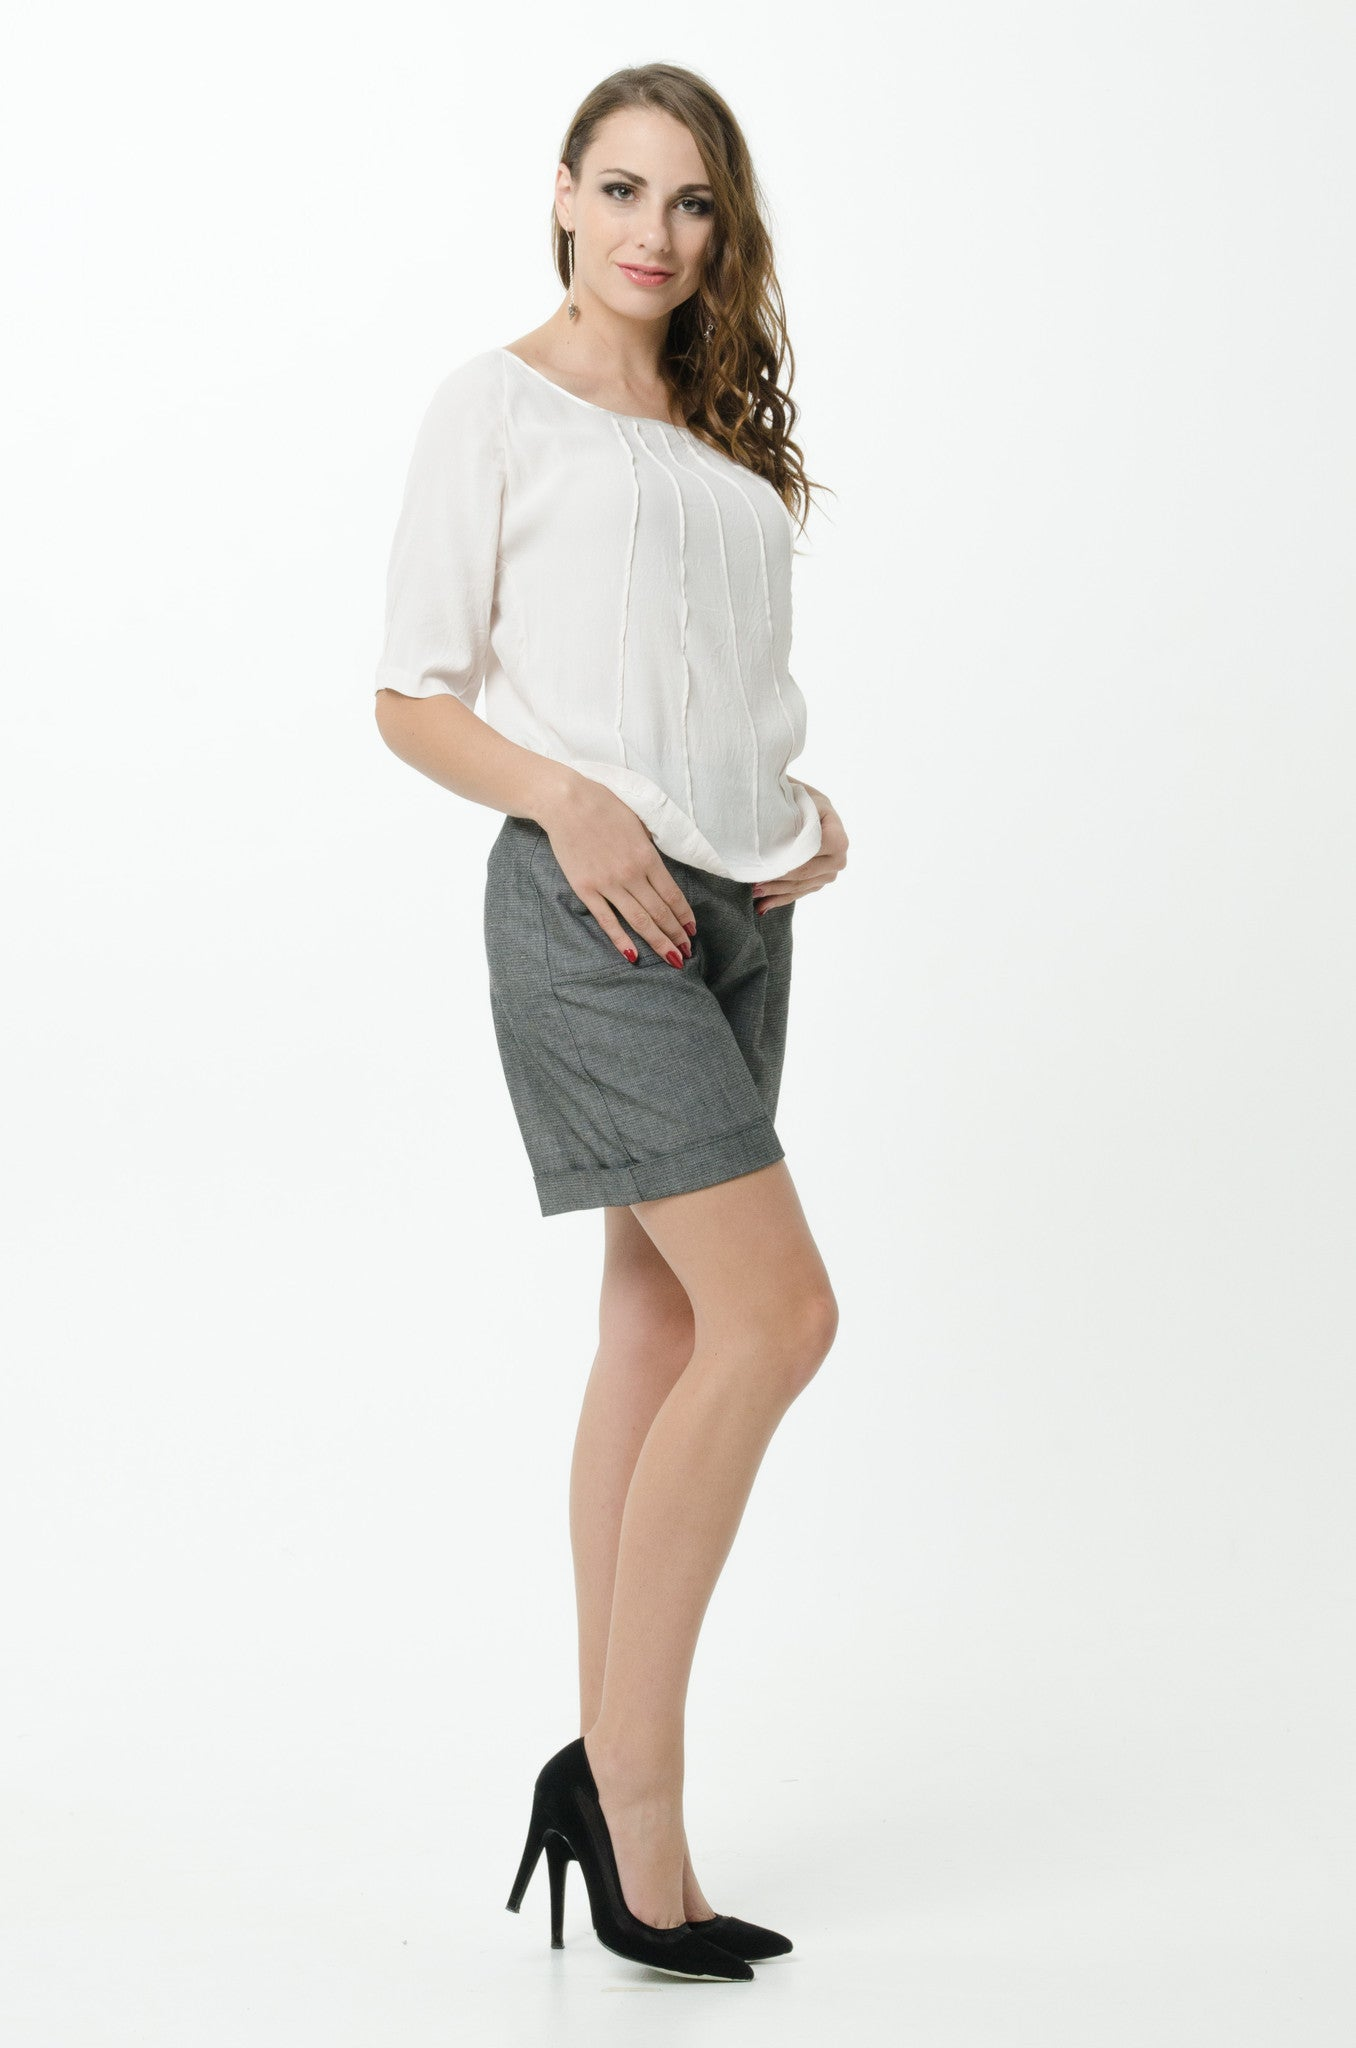 Vesta Pintuck Top - Vintage was $178 now $128